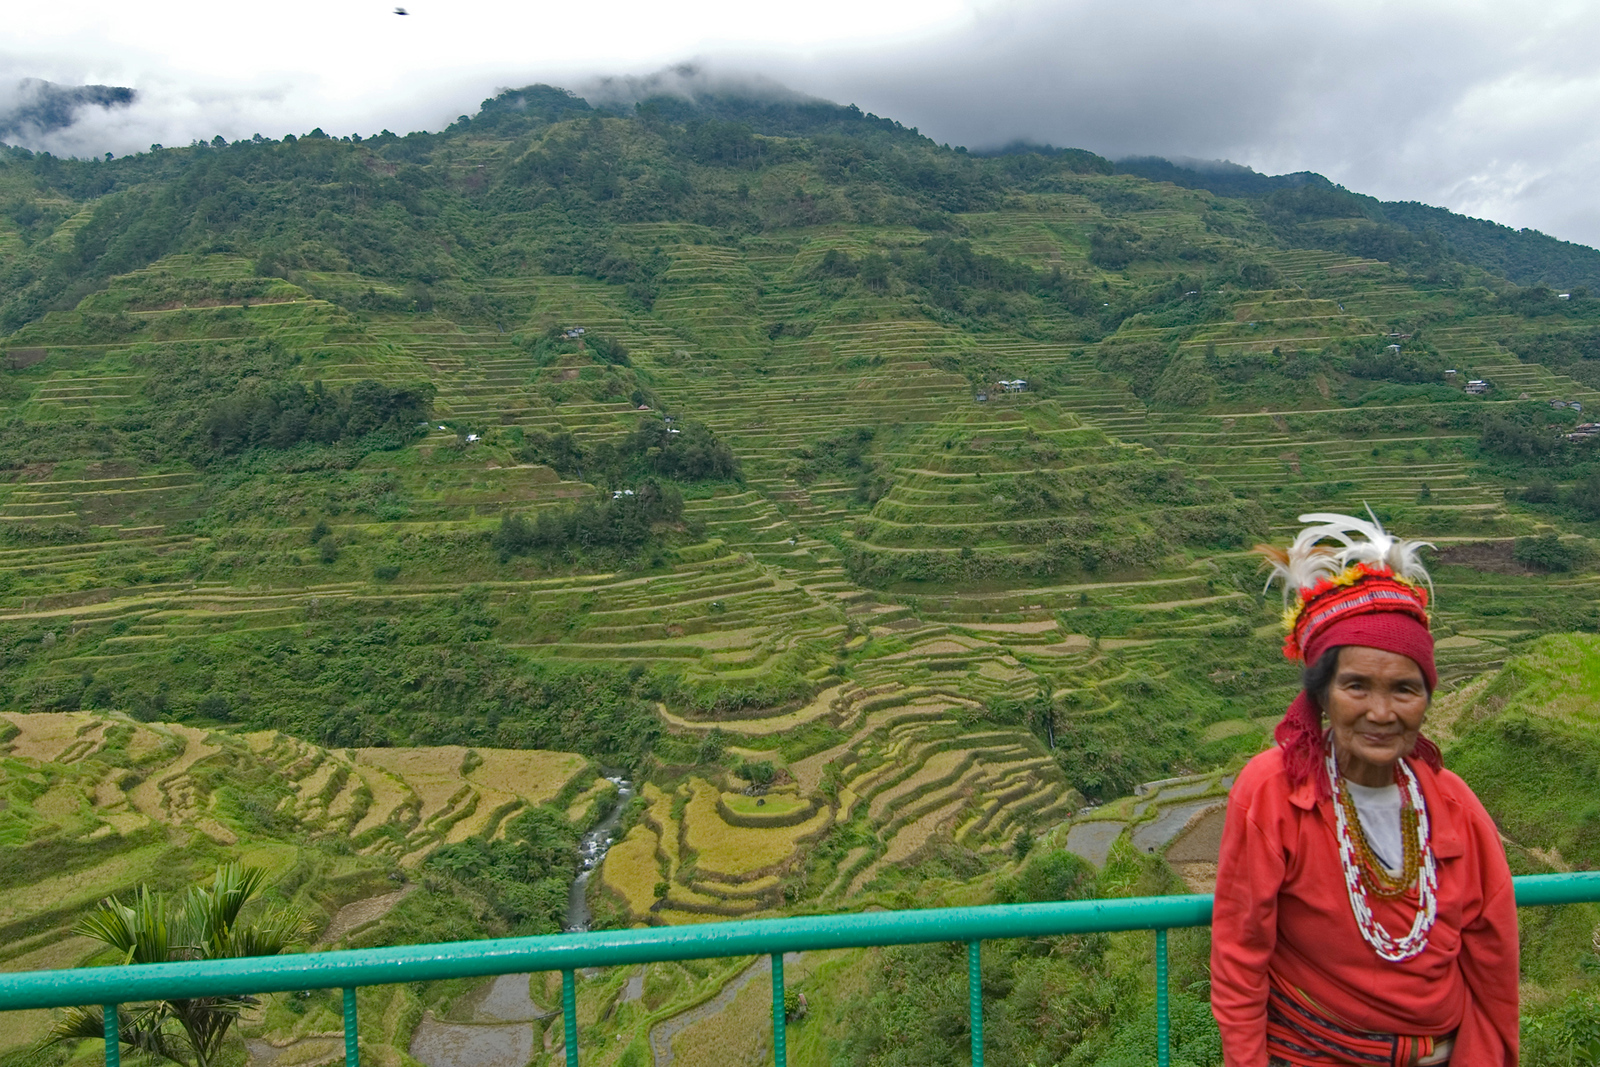 Rice Terraces of the Philippine Cordilleras - UNESCO World Heritage Sites